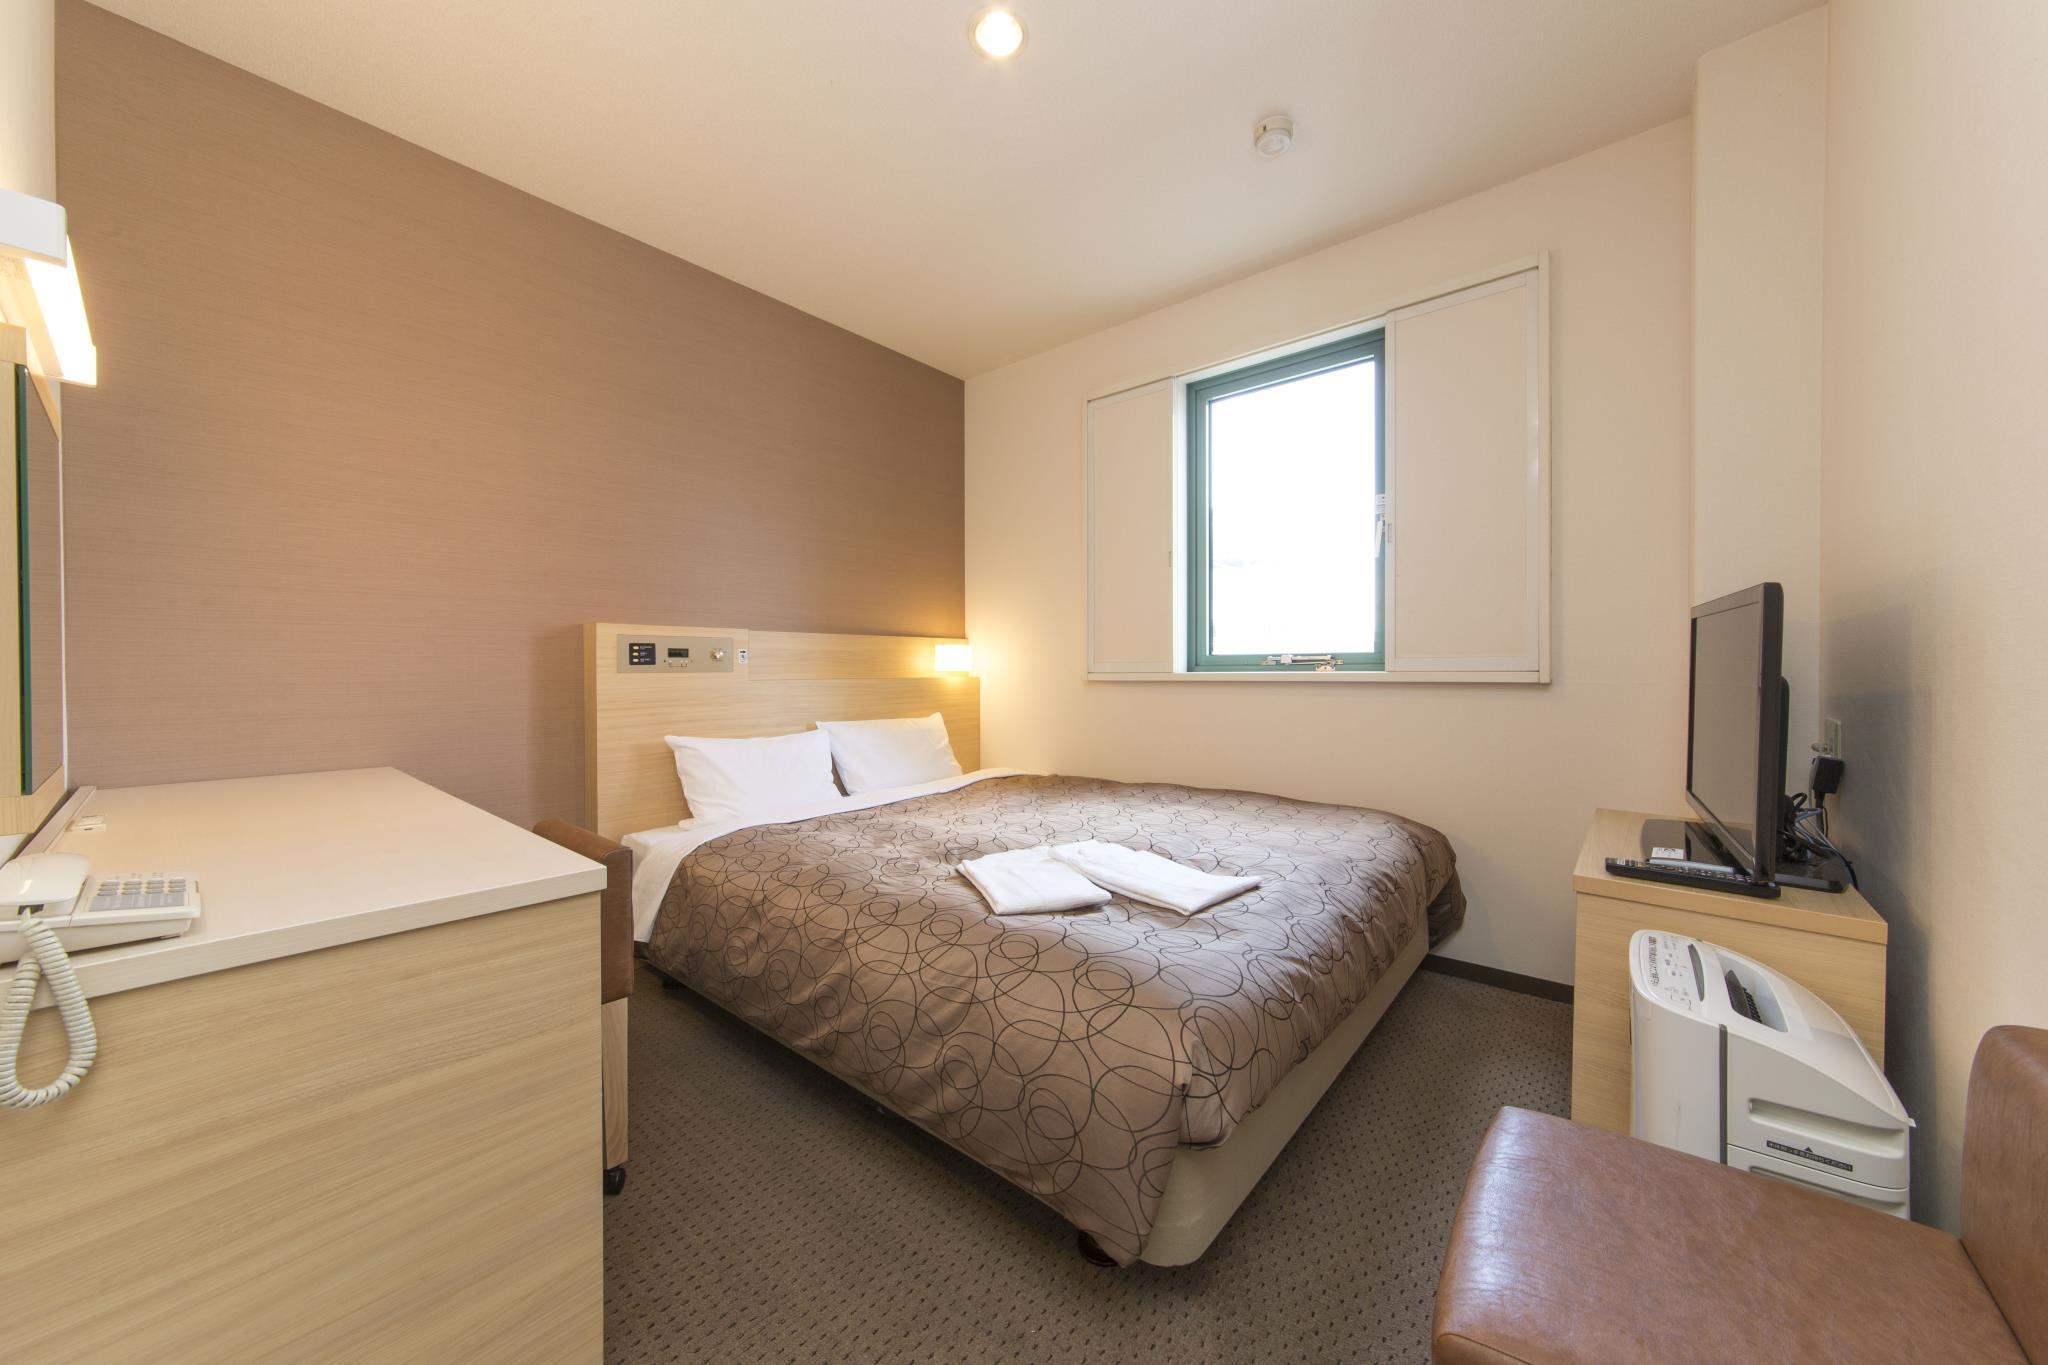 Chambre Double Deluxe ‒ Non-Fumeur (Deluxe Double Room - Non-Smoking)